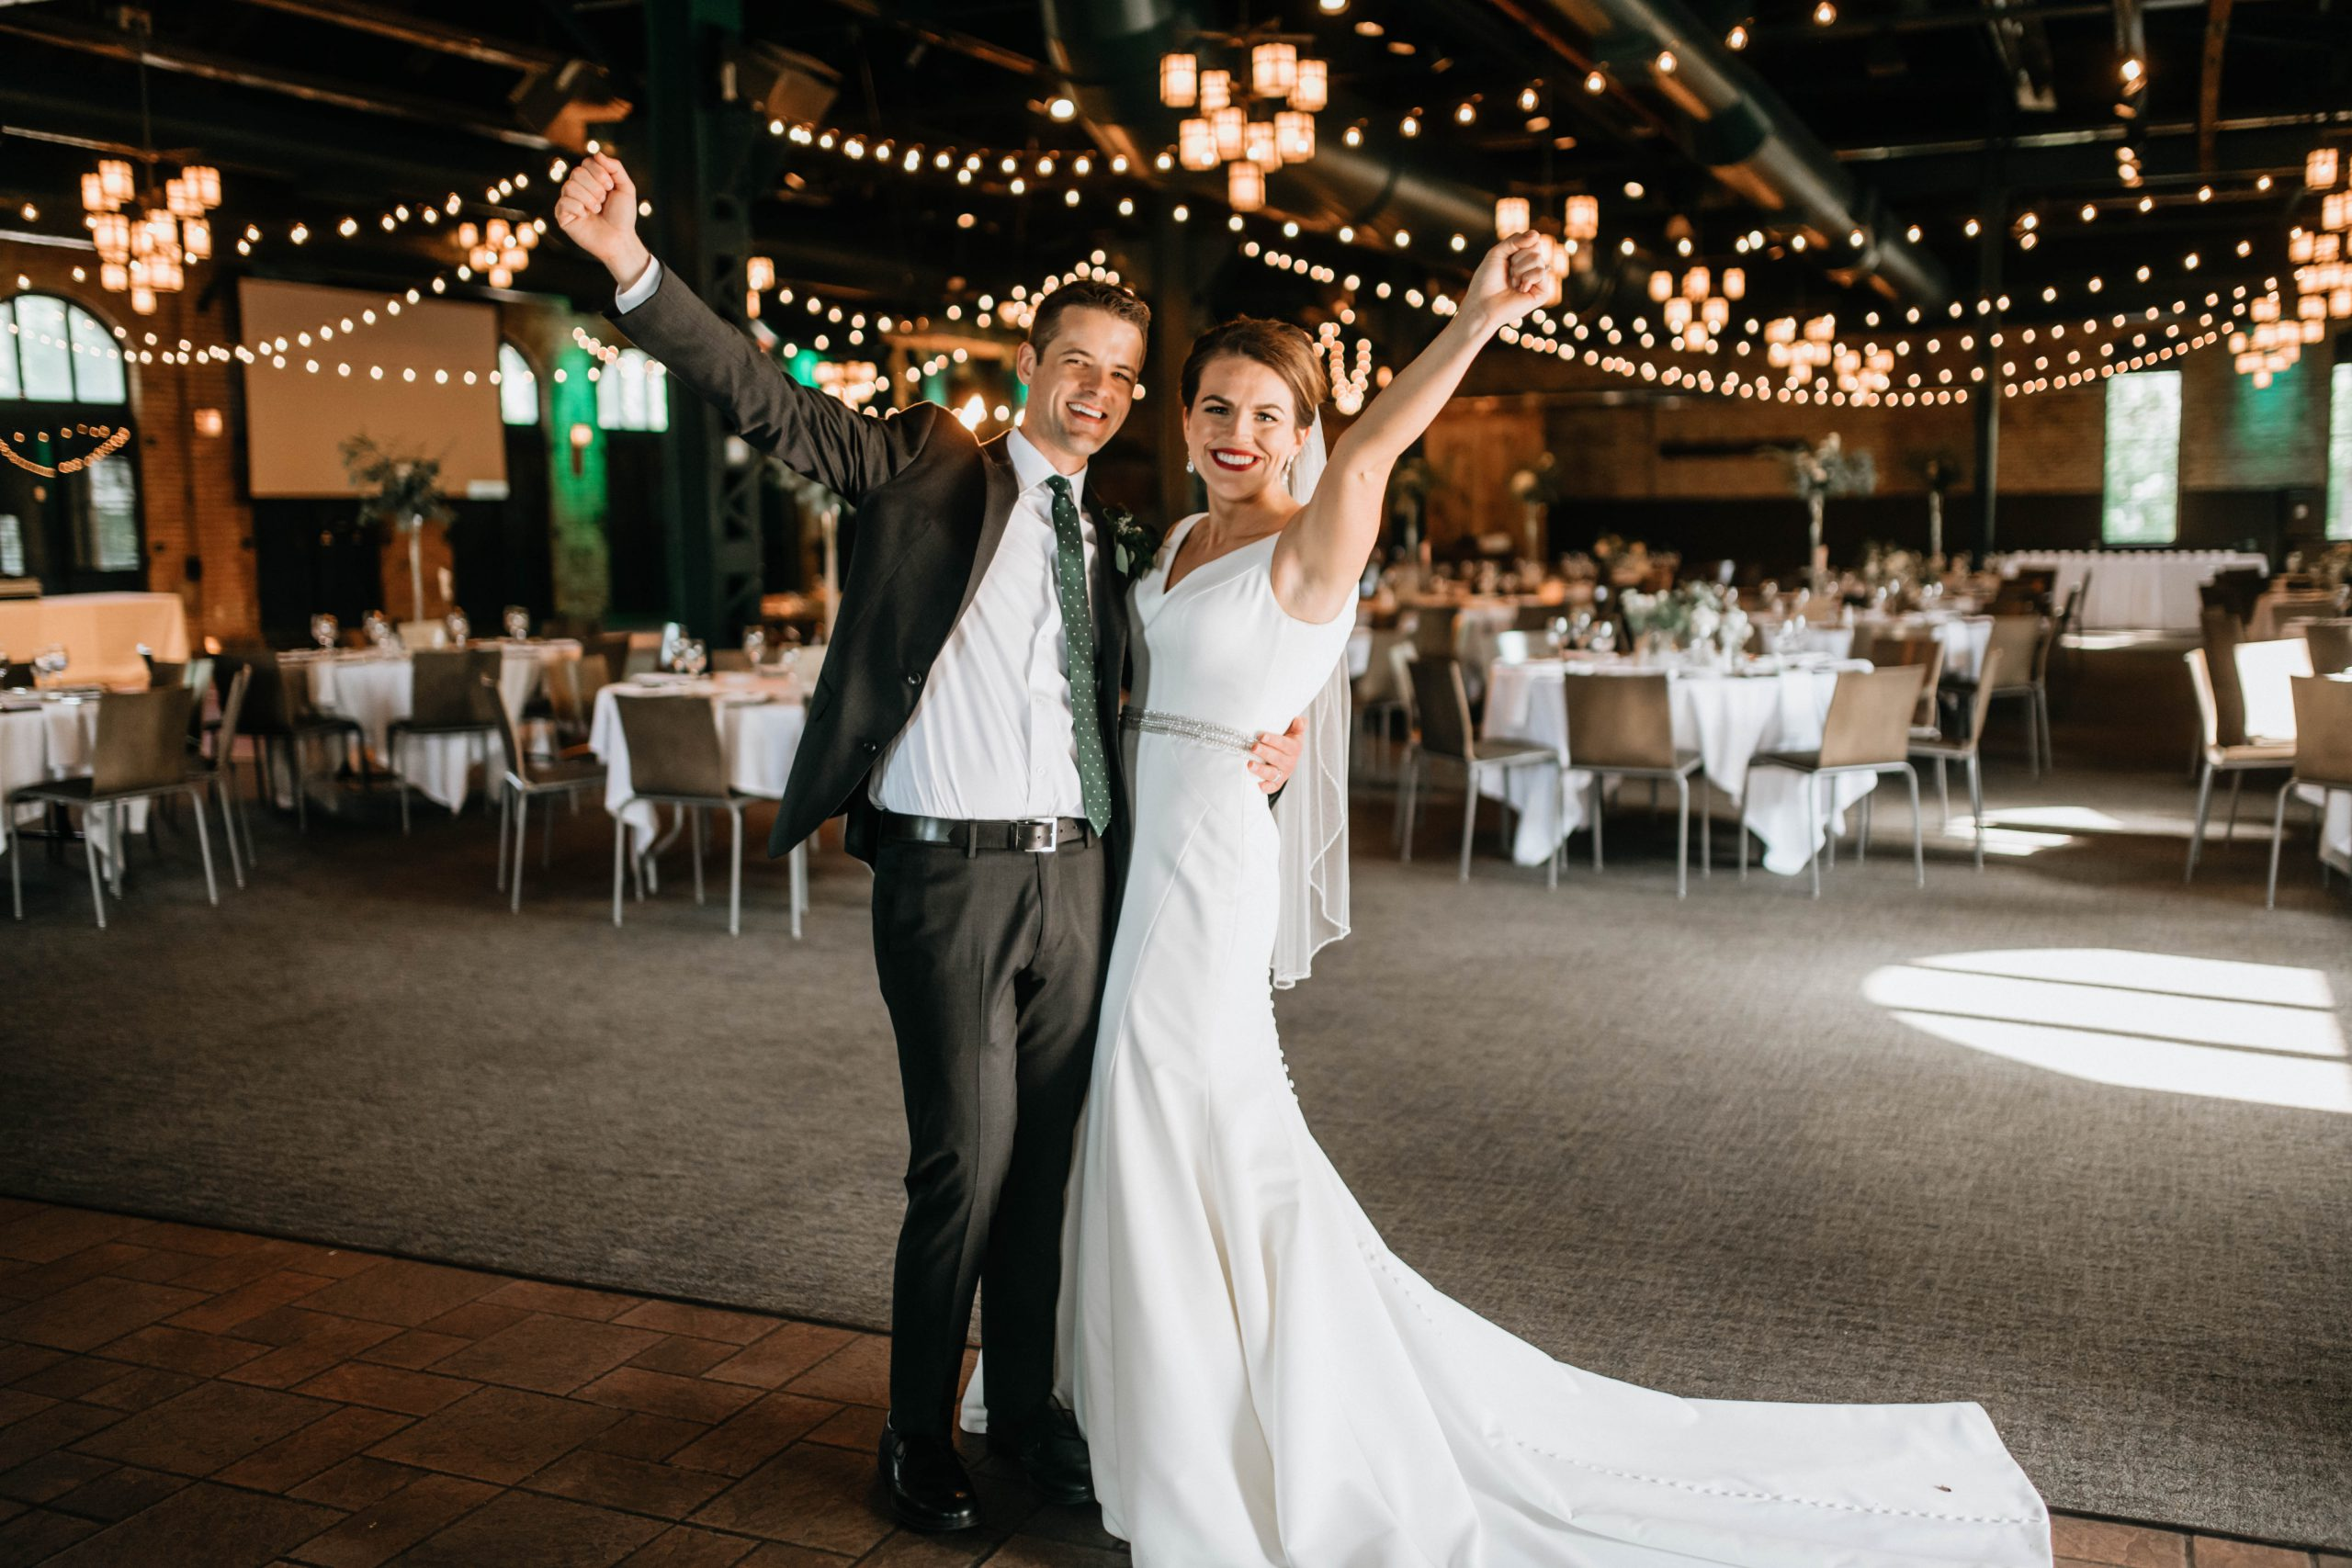 bride and groom throw their arms up at their reception